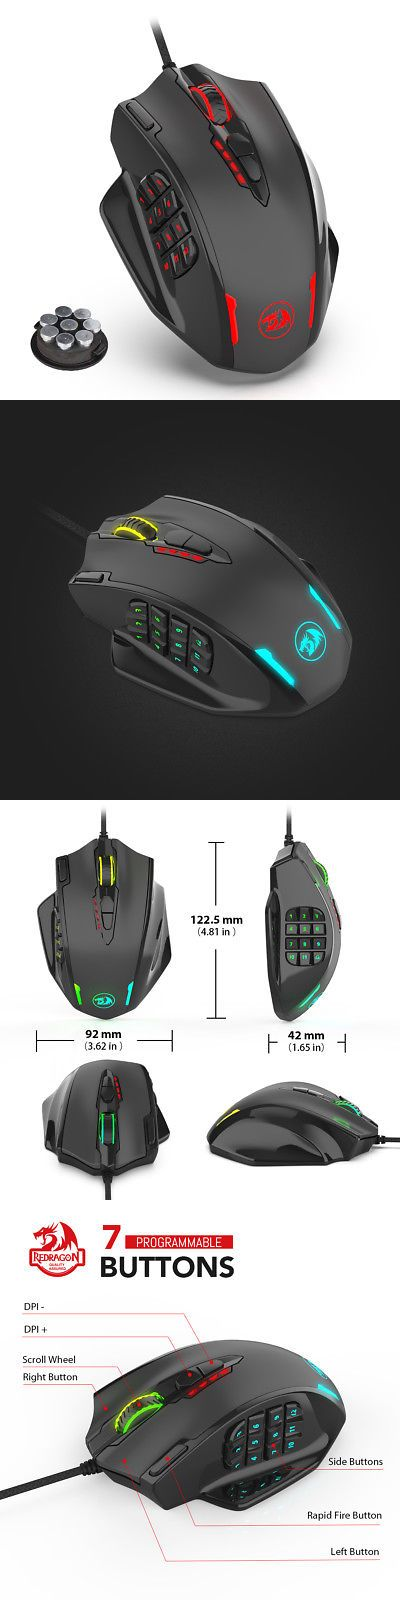 Mice Trackballs and Touchpads 23160: Redragon M908 Gaming